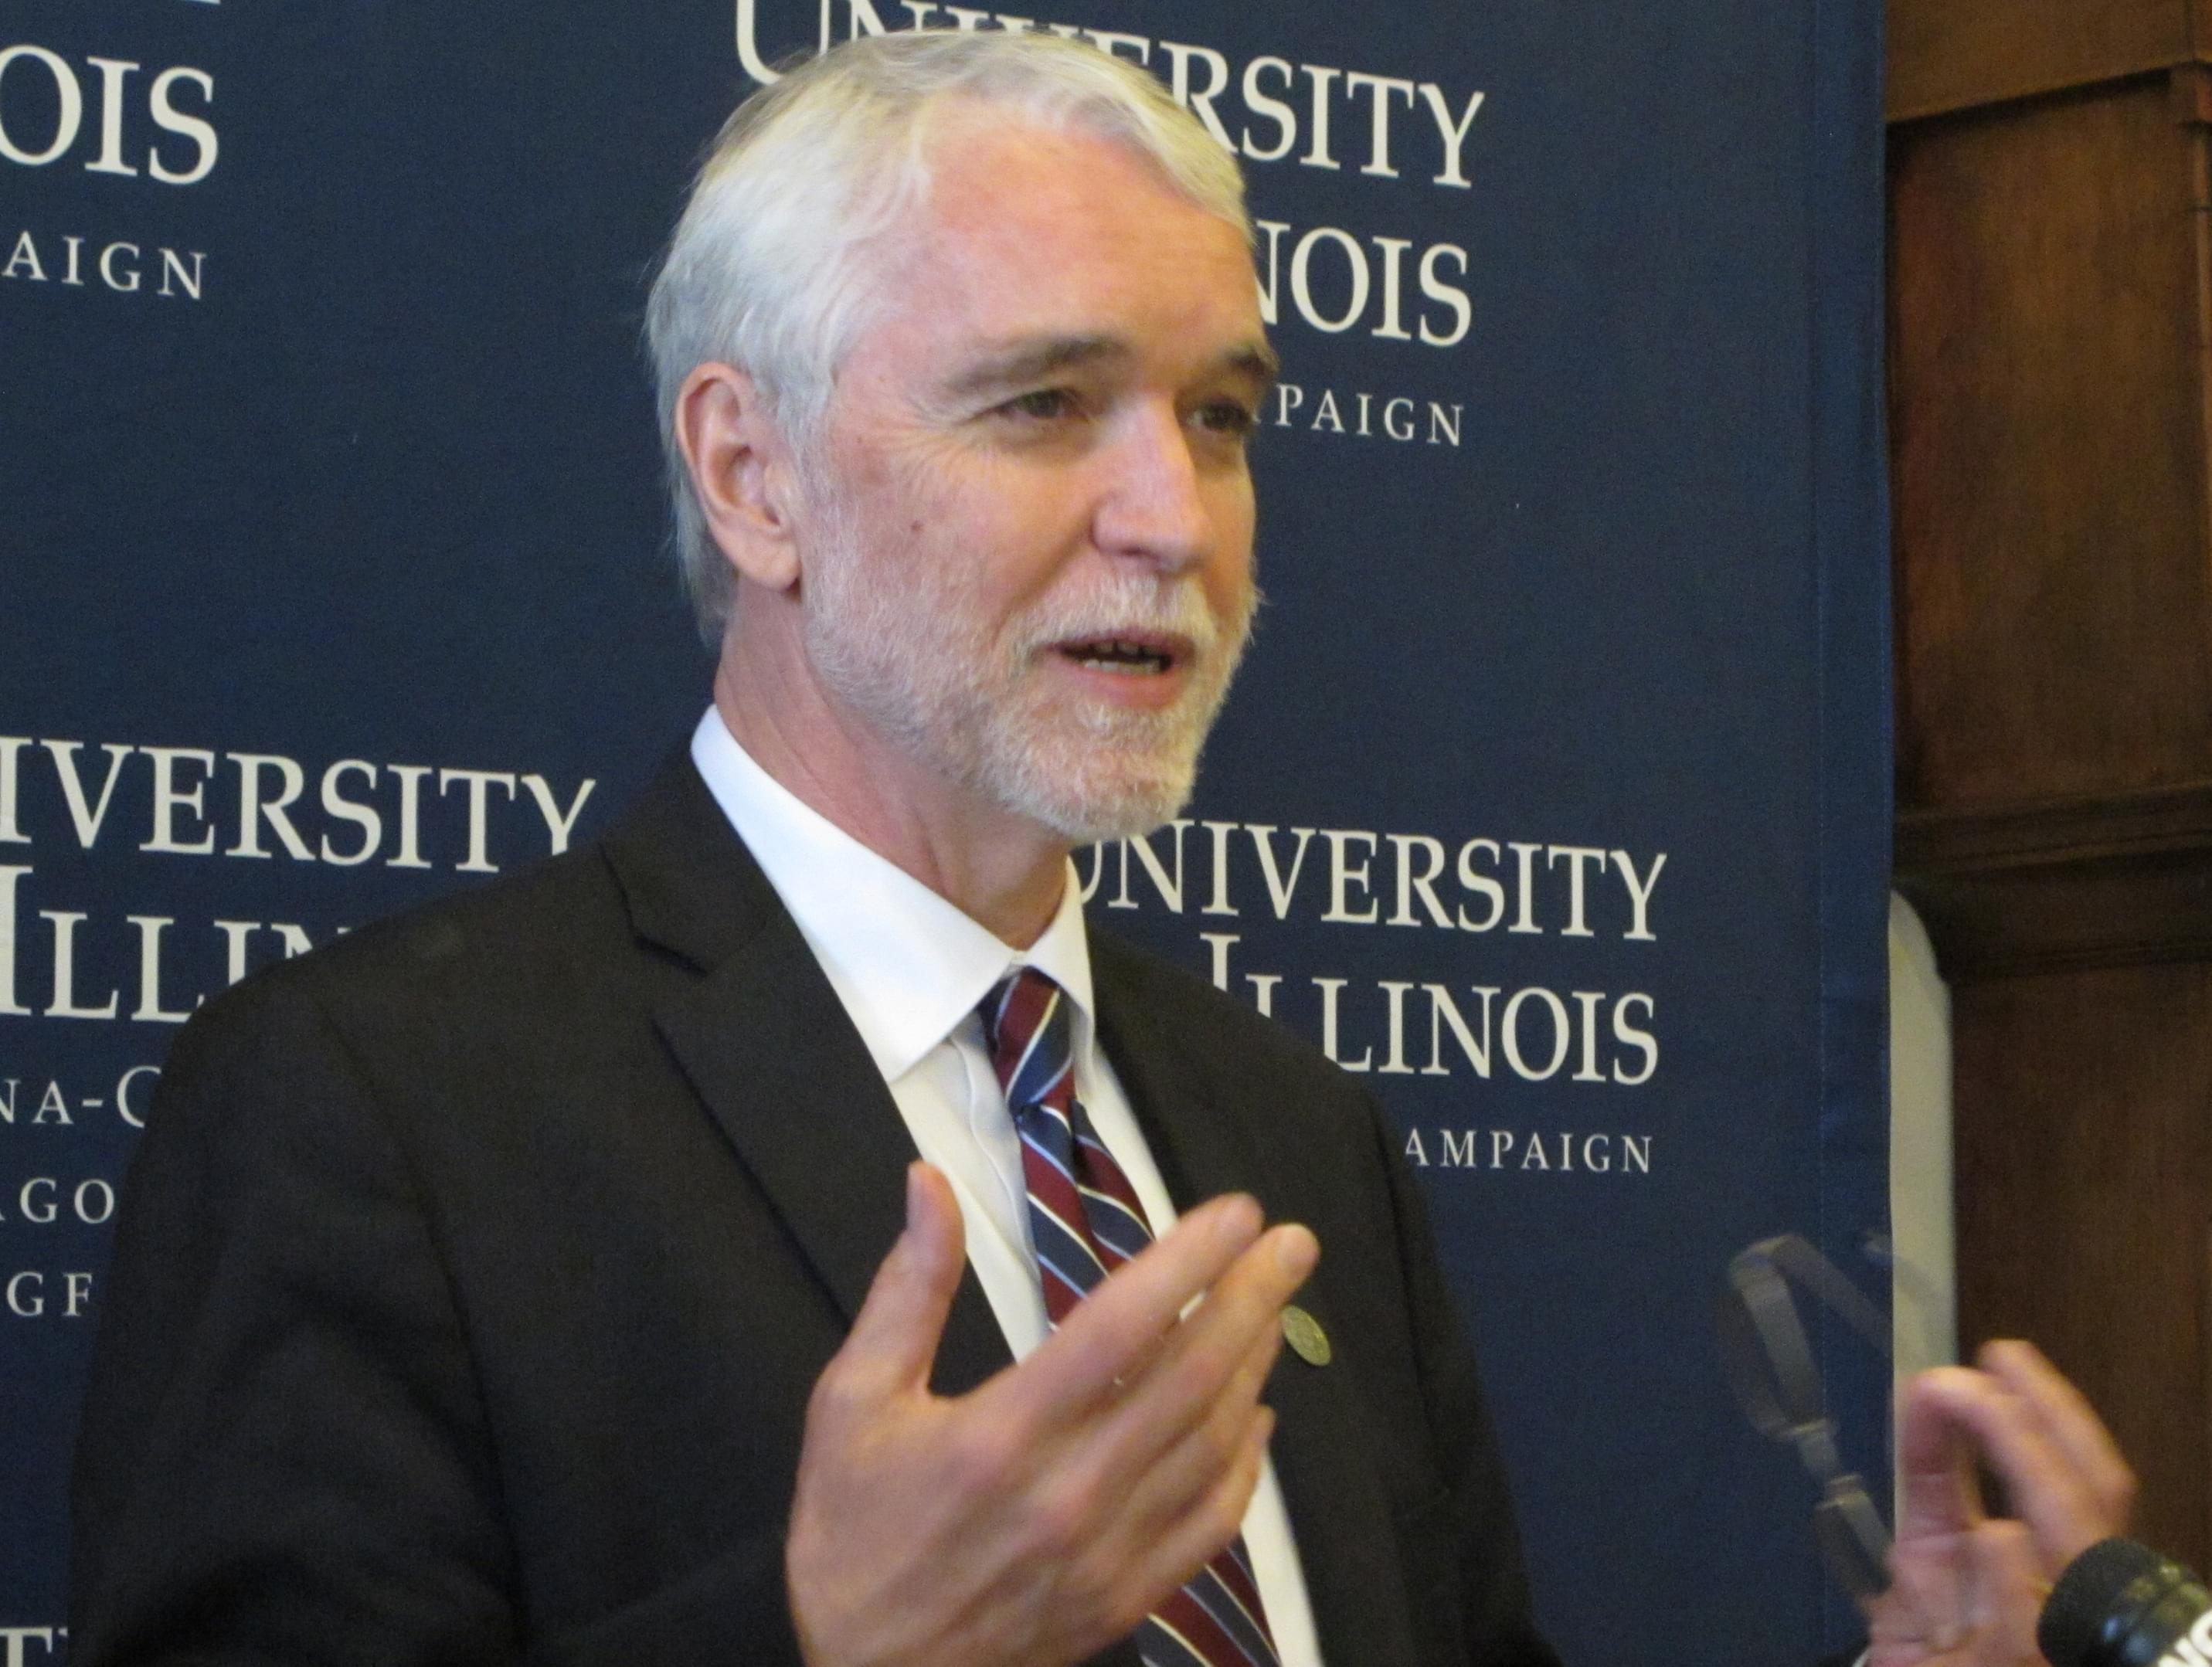 New University of Illinois President Timothy Killeen speaks to reporters in his office Monday, May 18, 2015 in Urbana